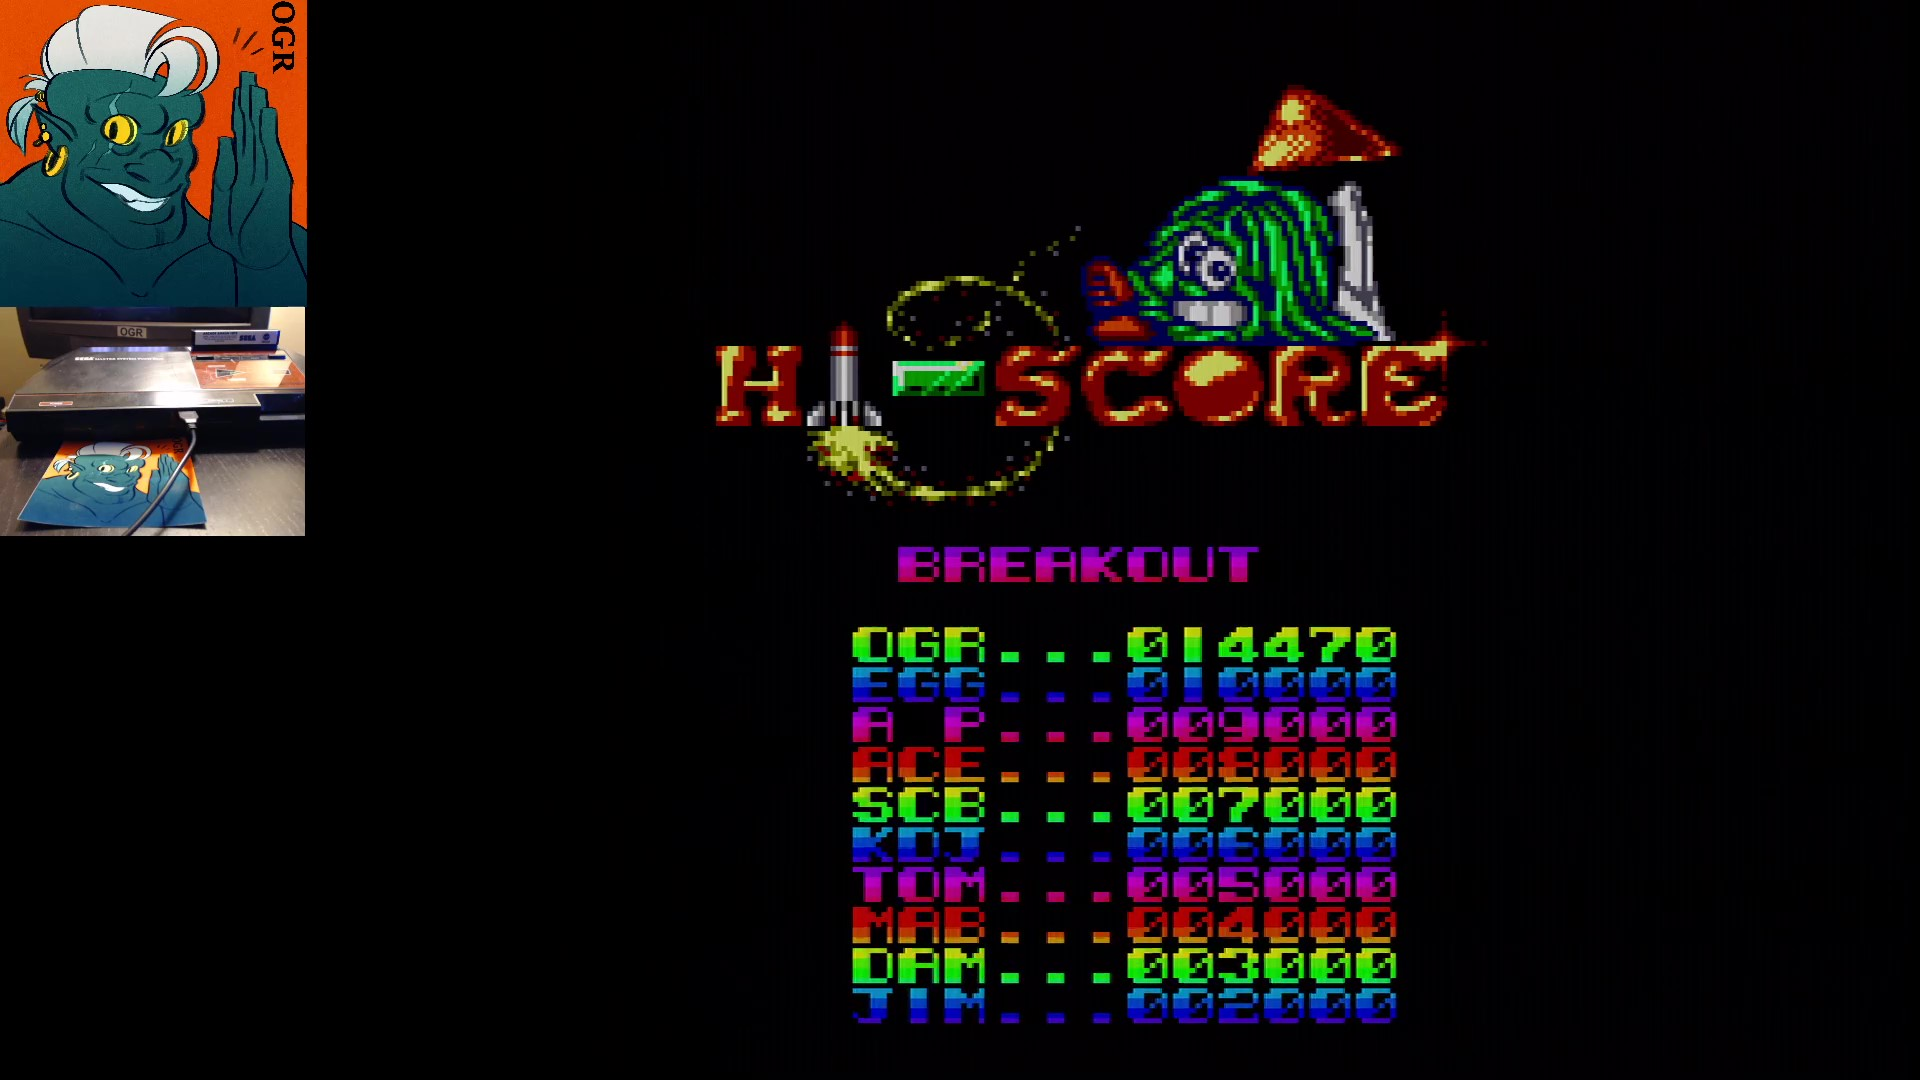 AwesomeOgre: Arcade Smash Hits: Breakout (Sega Master System) 14,470 points on 2020-01-19 12:06:27